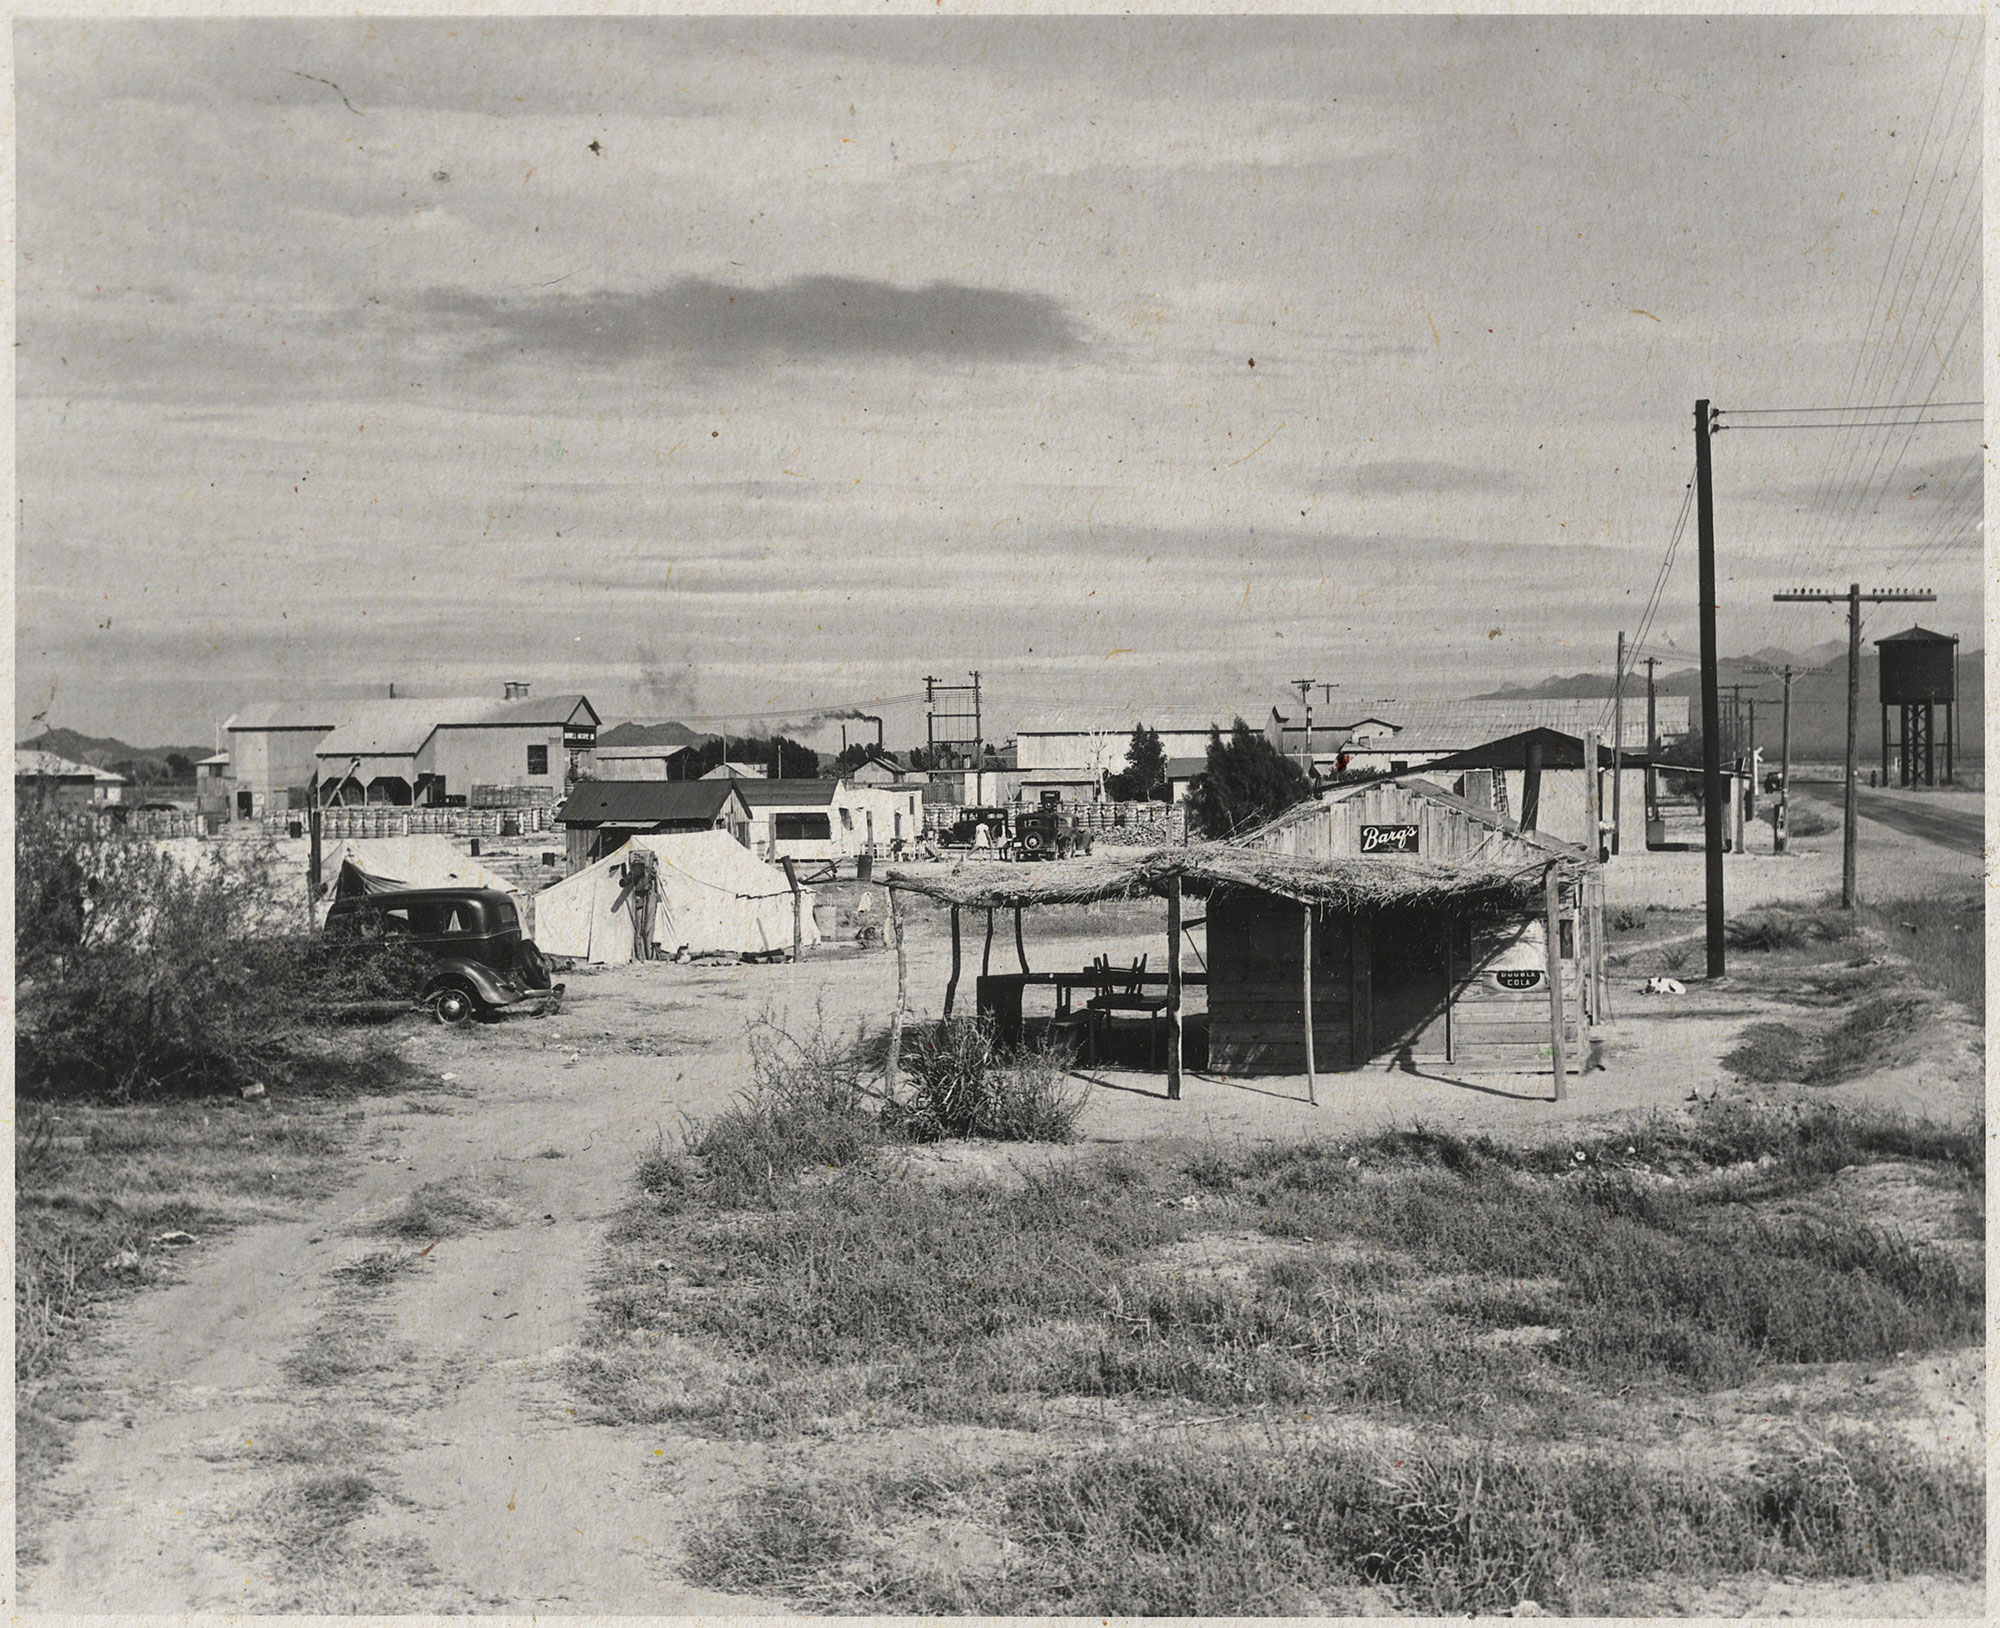 camp for cotton pickers in Buckeye, 1940; Photo courtesy Commons.wikimedia.org